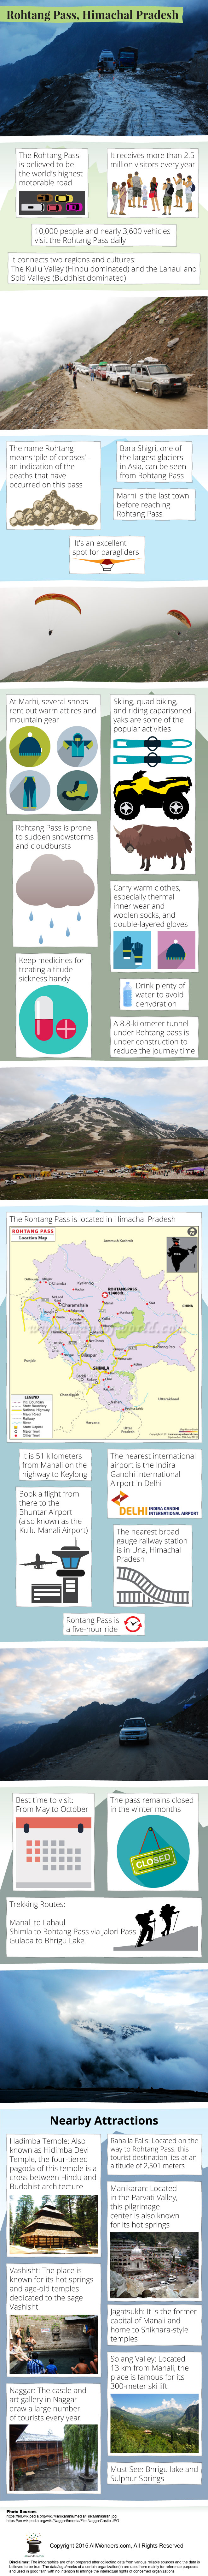 Rohtang Pass Infographic